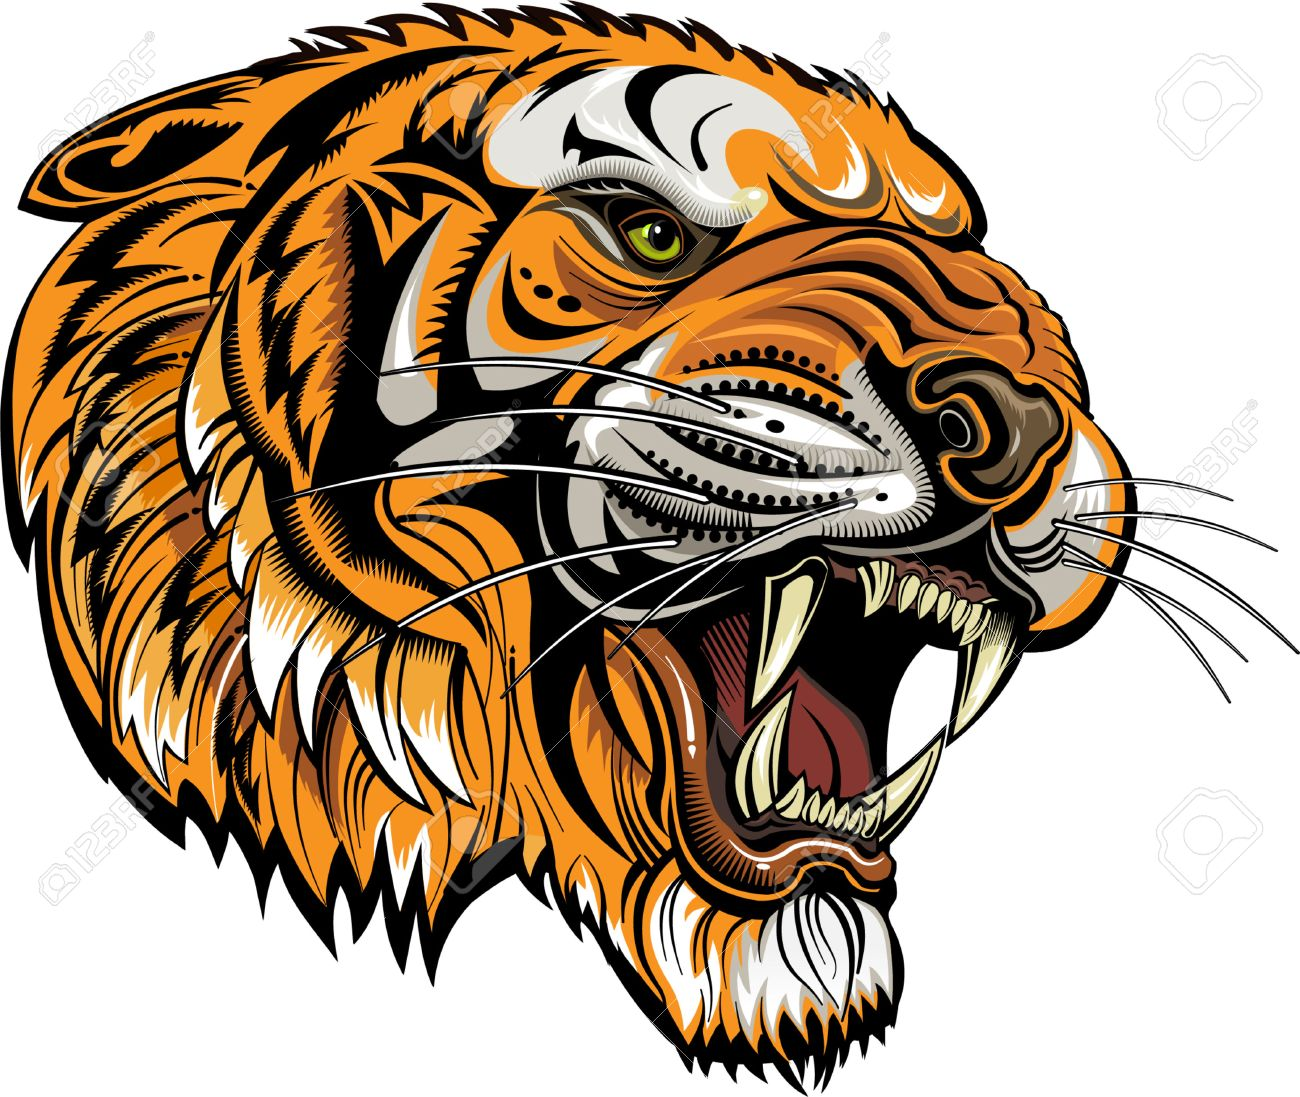 155ec02e9 Tigers Face. Saber-toothed Tiger Tattoo Royalty Free Cliparts ...